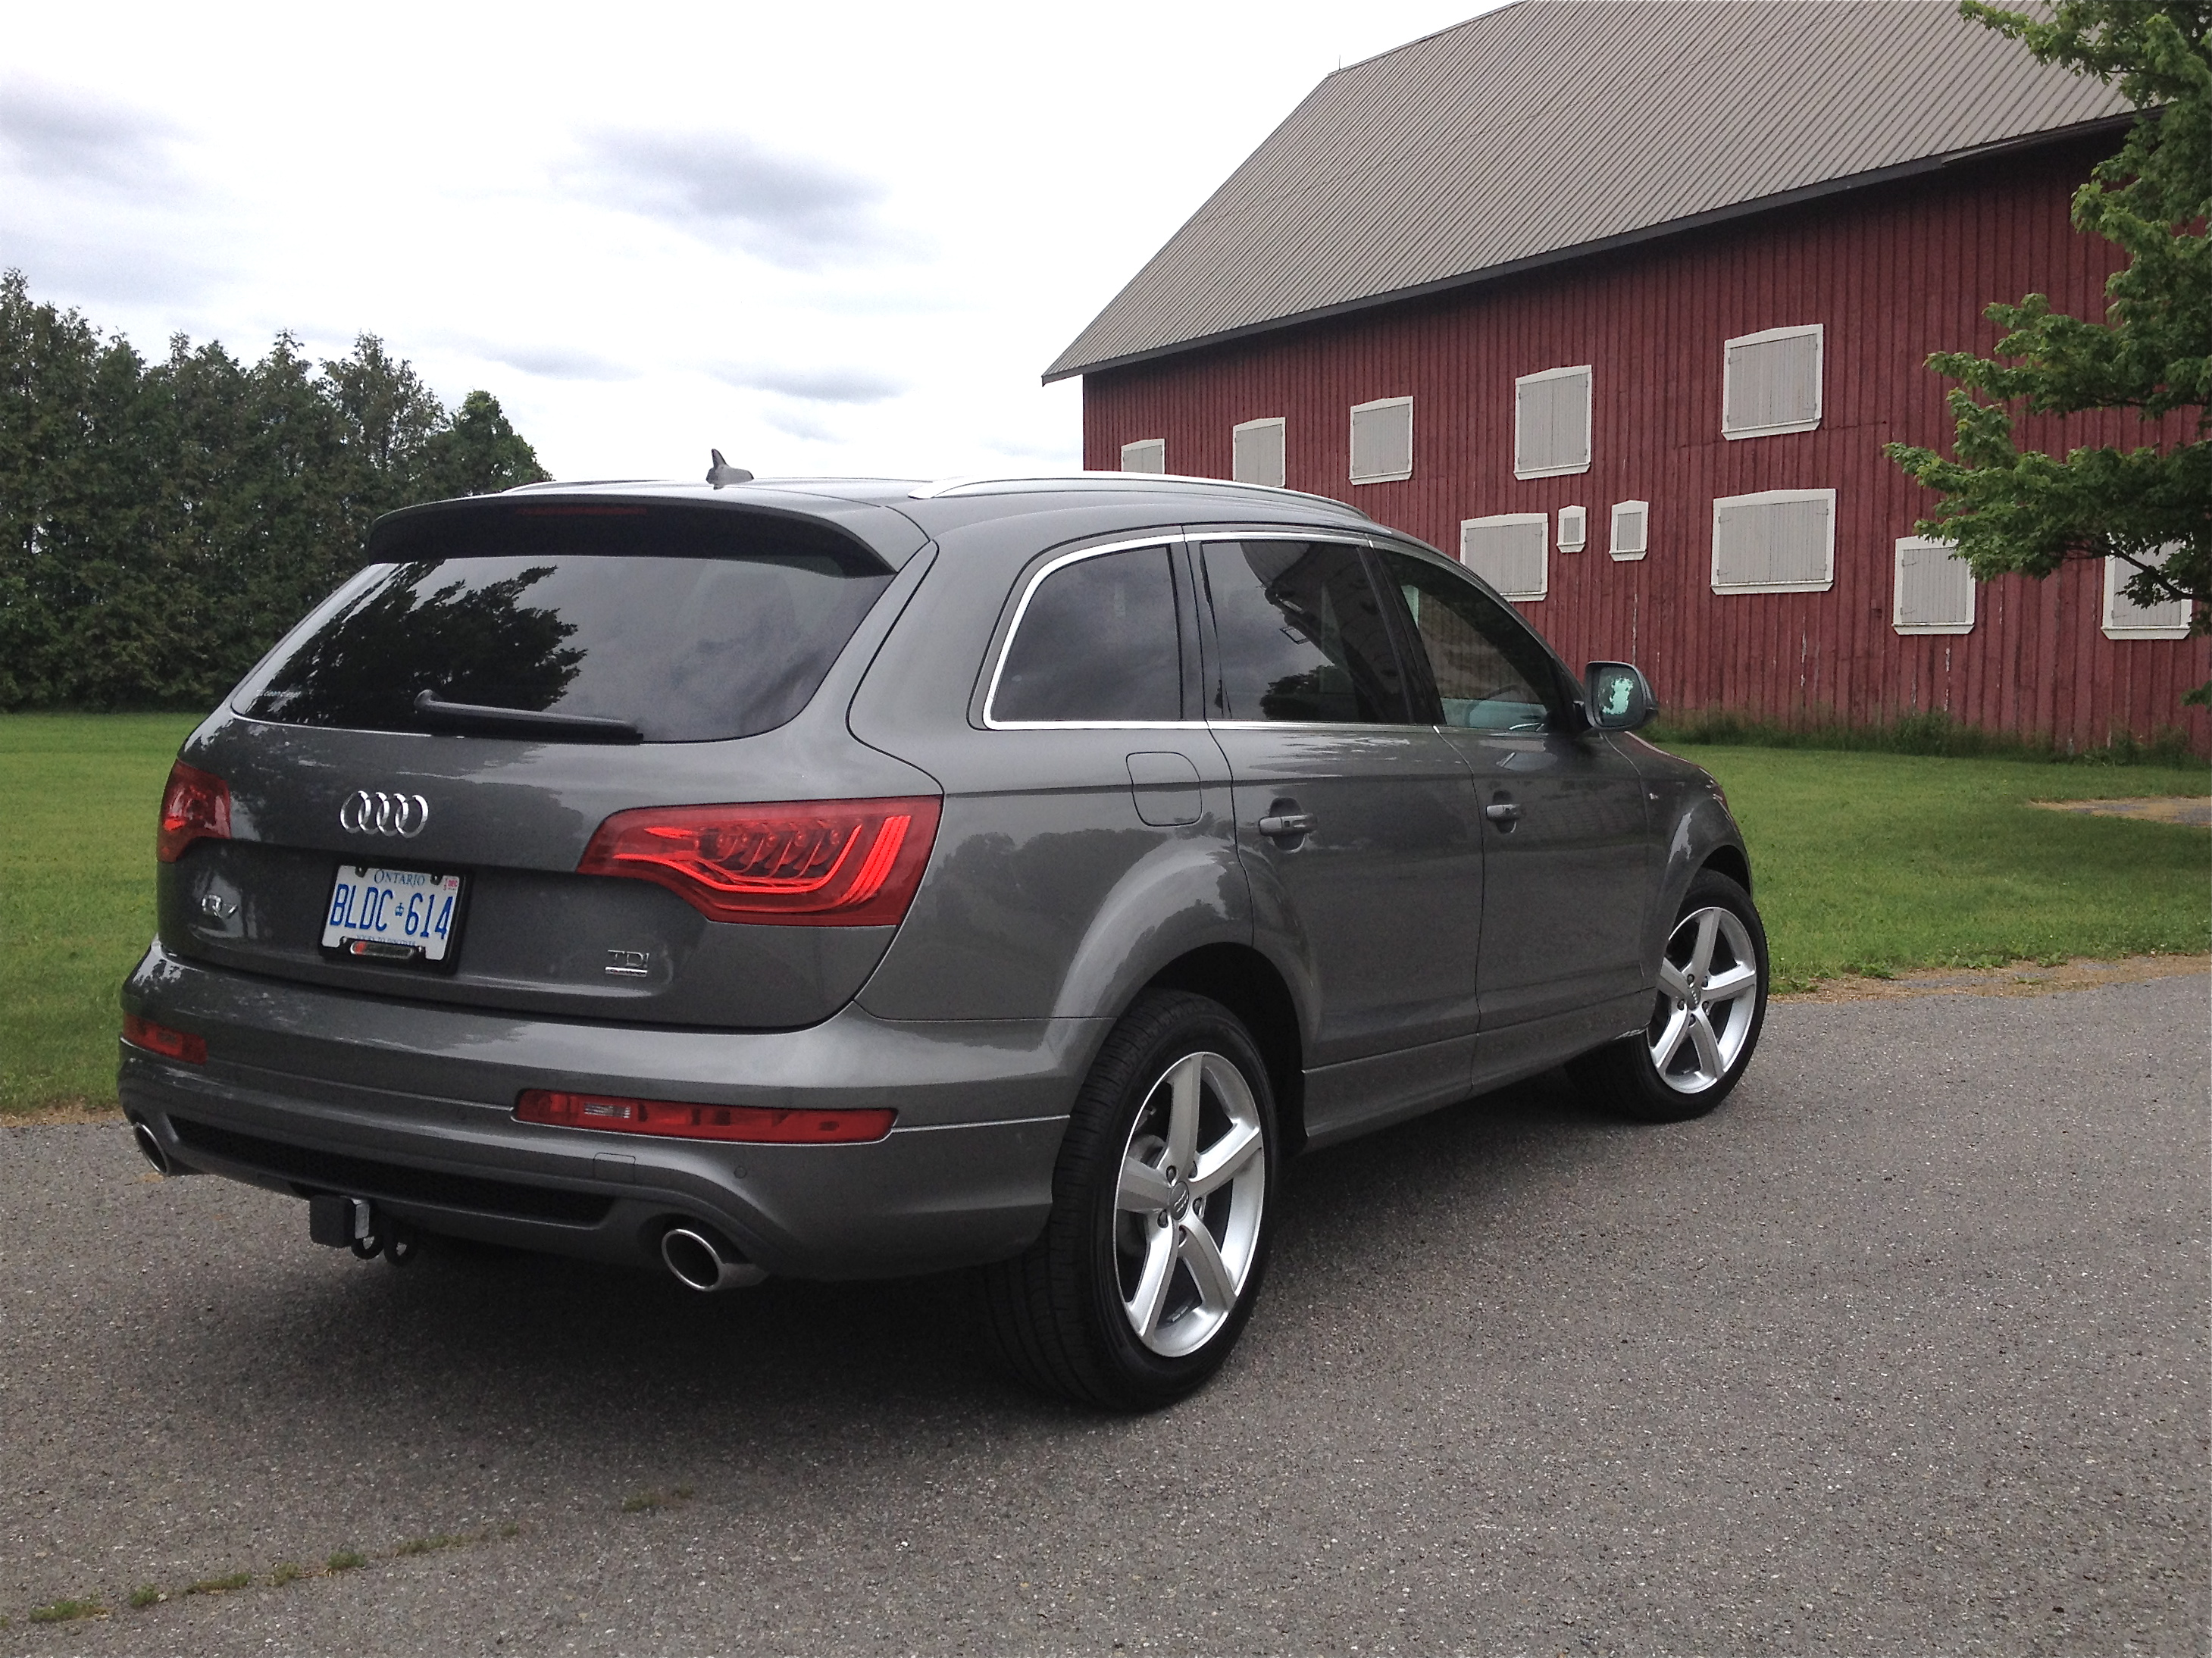 2012 audi q7 information and photos momentcar. Black Bedroom Furniture Sets. Home Design Ideas